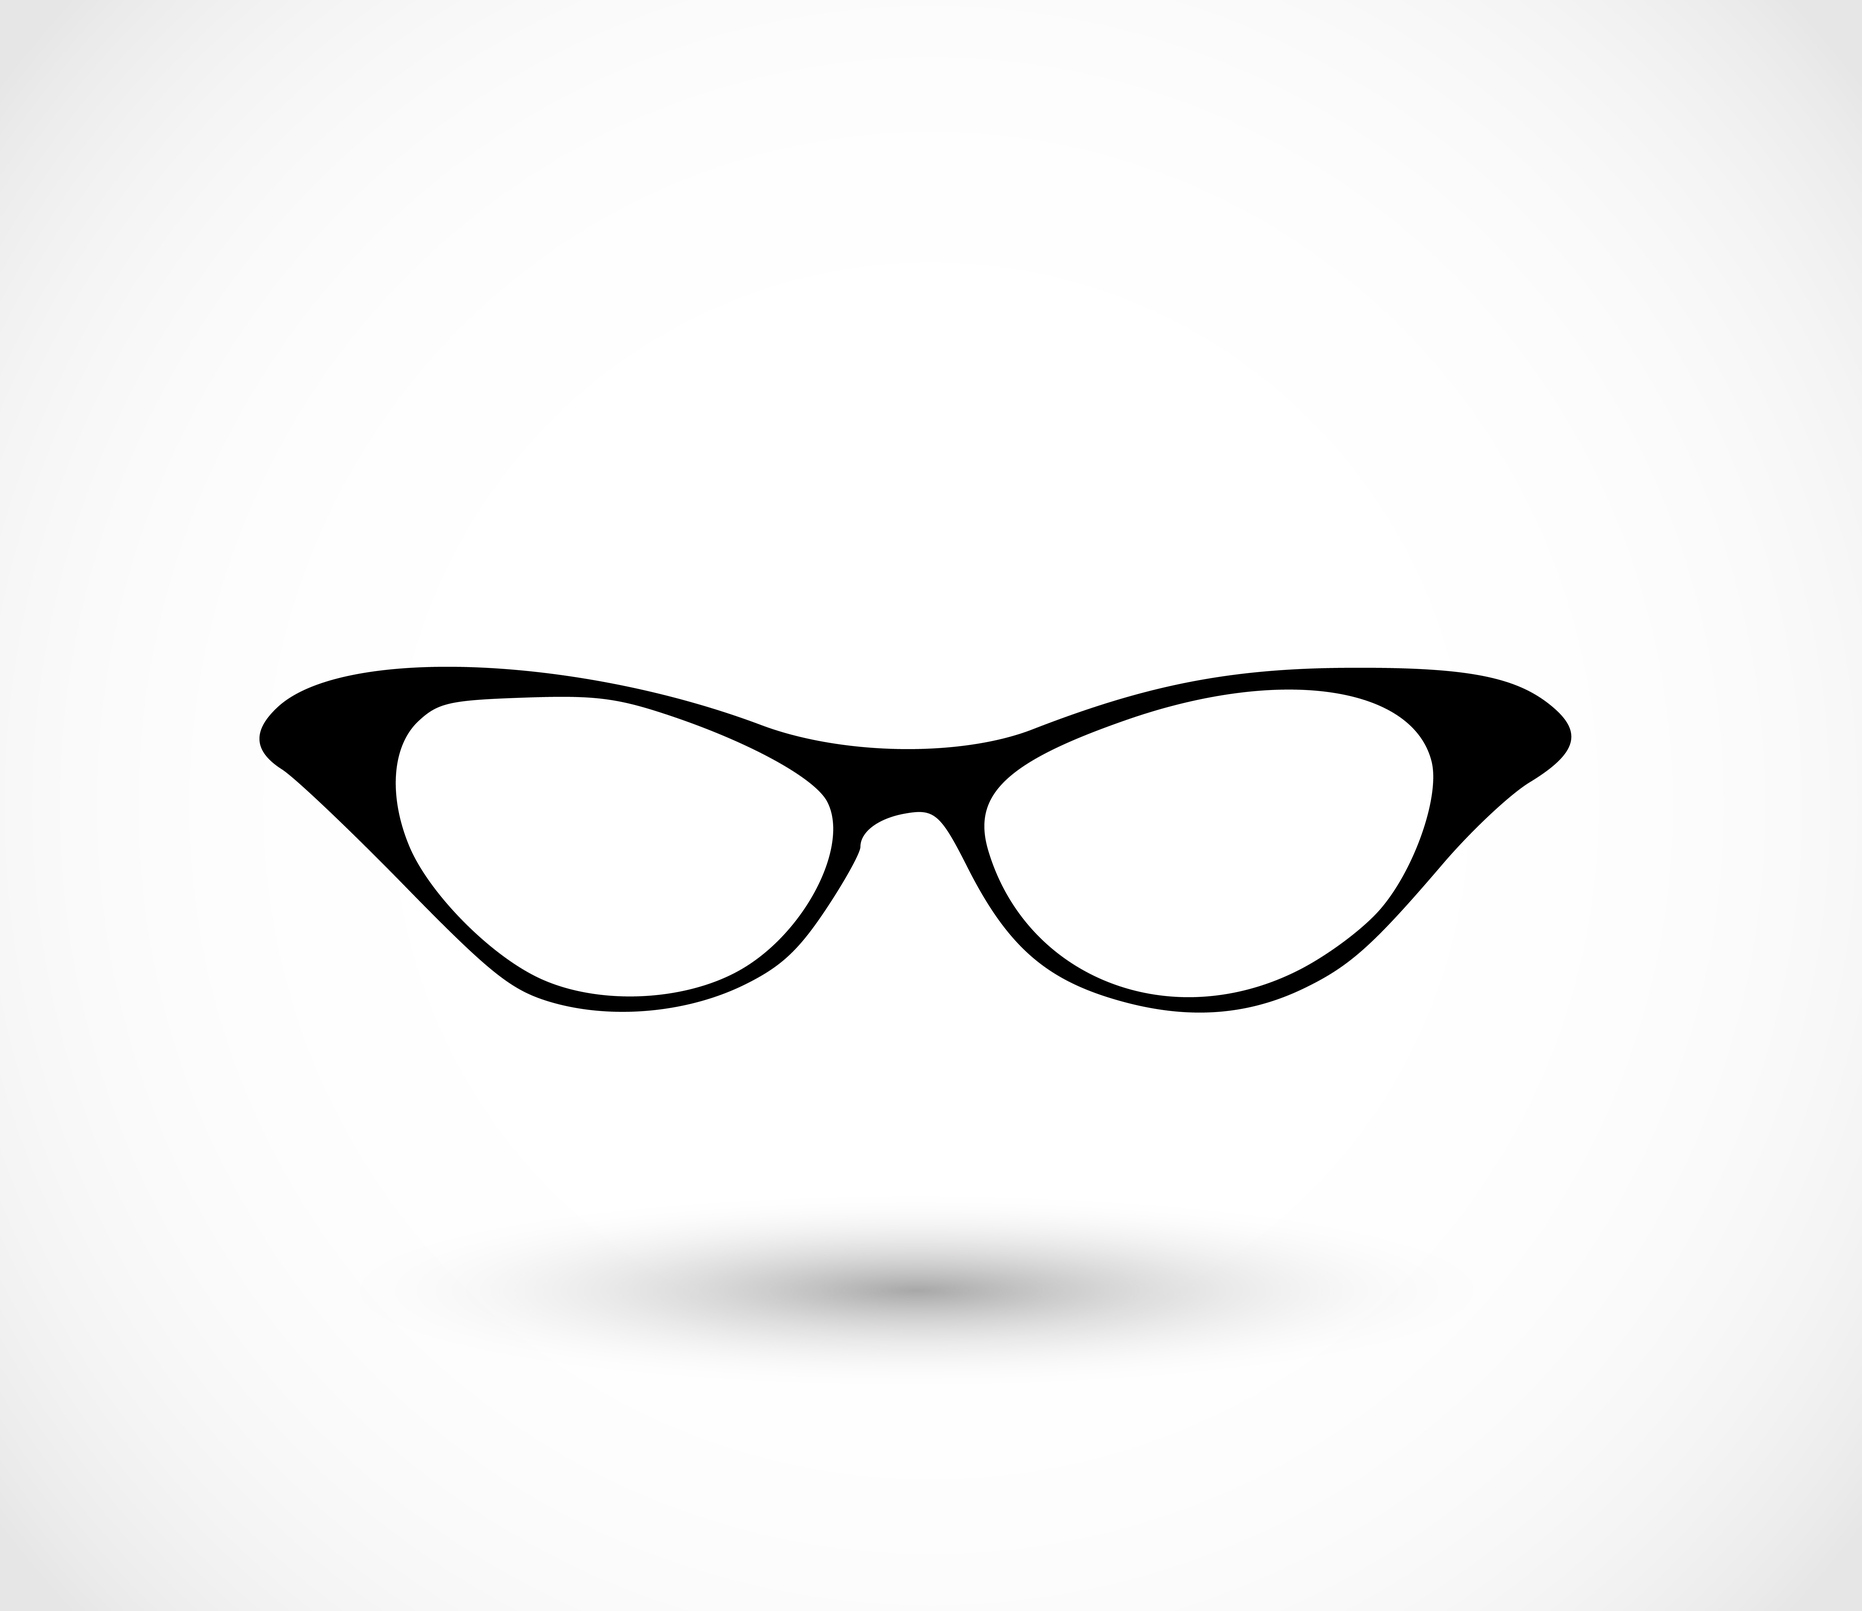 Lenses. - The majority of lenses we supply in our reading glasses are for magnification purposes and therefore intended for close work.Our bespoke reading glasses have superior quality lenses and in addition can be glazed with prescription lenses if you prefer.